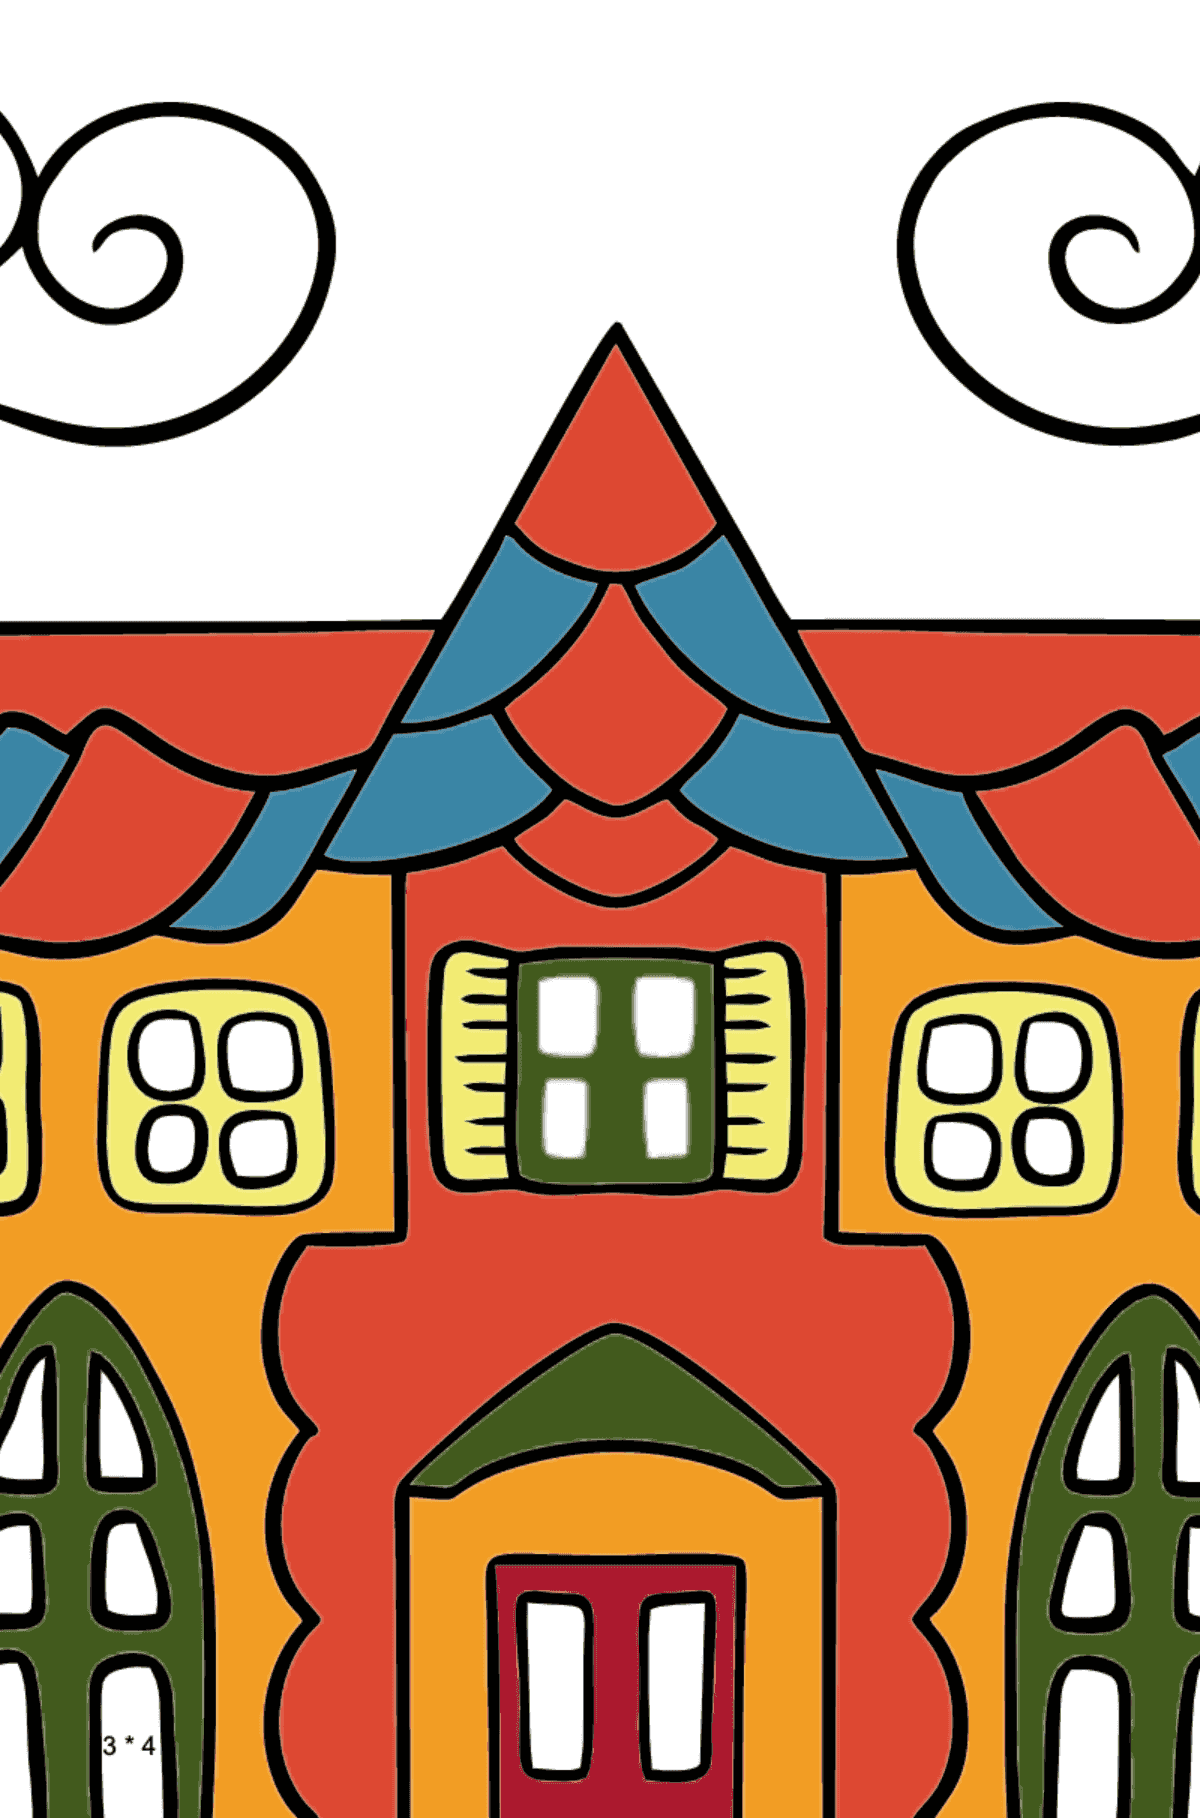 Simple Coloring Page - A House in an Enchanted Kingdom for Kids  - Color by Number Multiplication